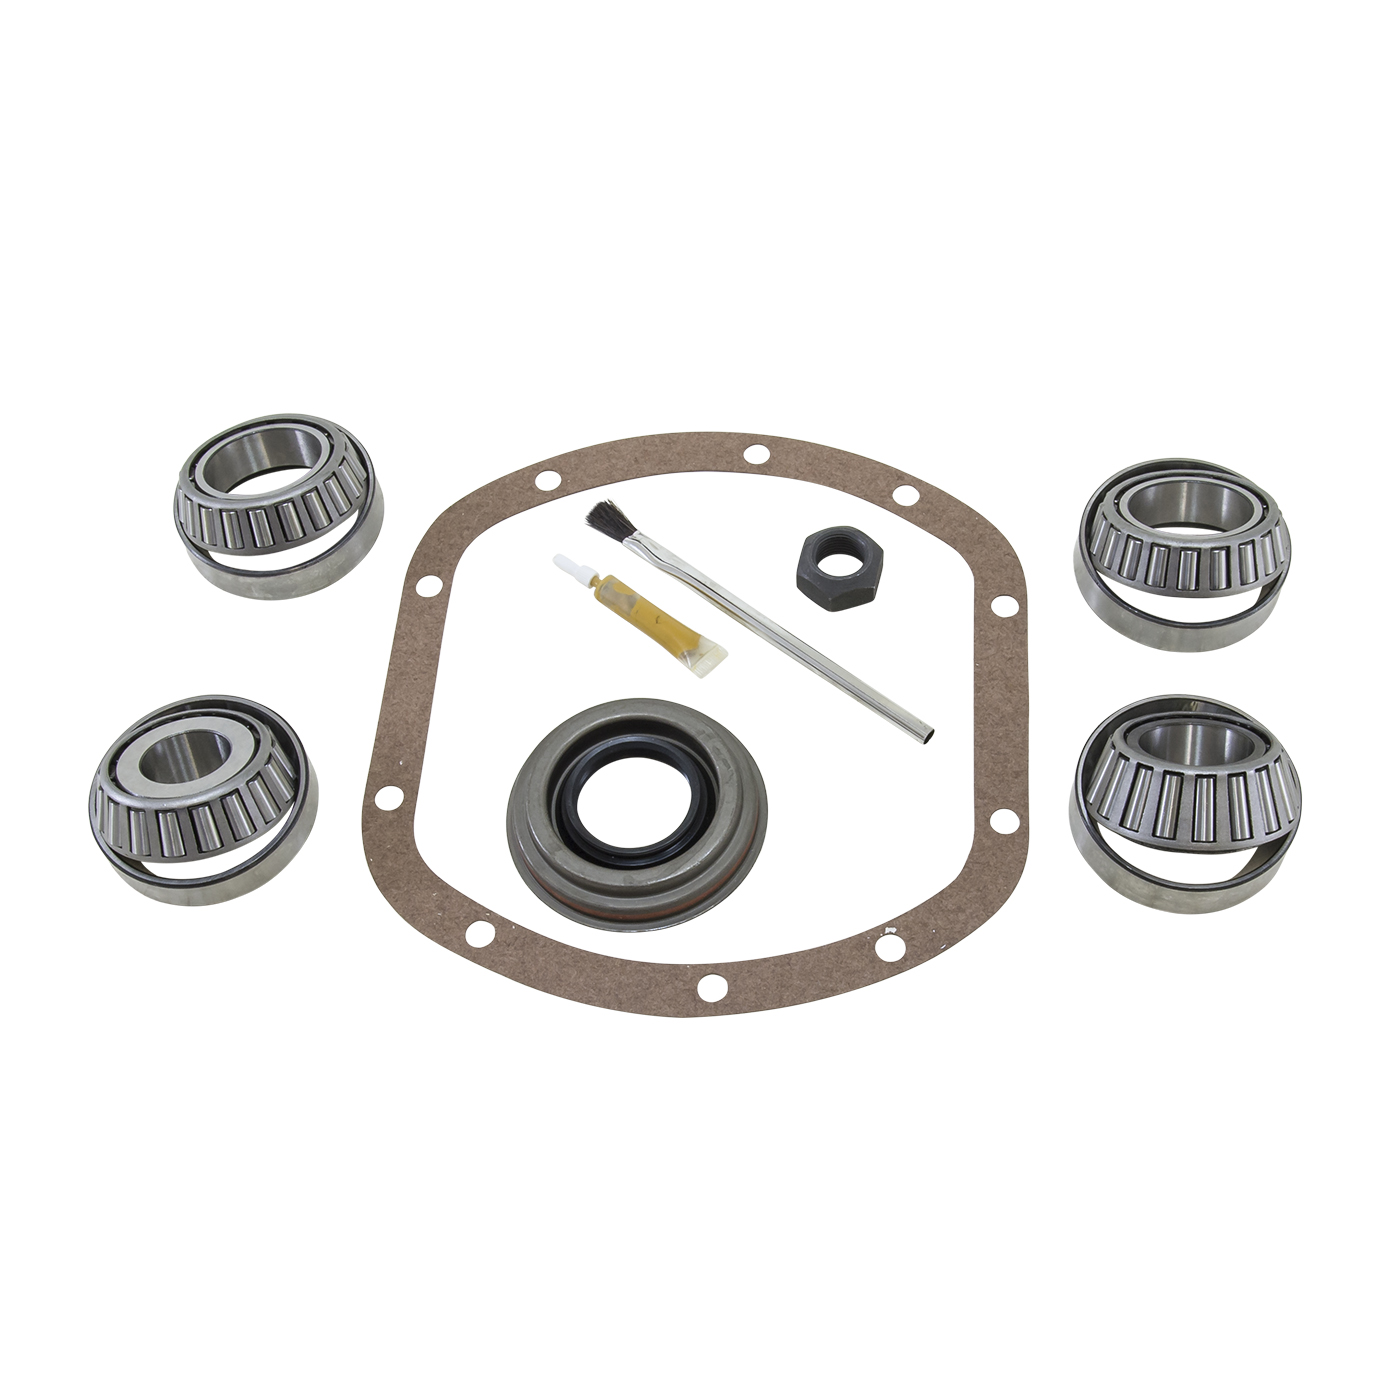 ZBKD30-F - USA Standard Bearing kit for Dana 30 front